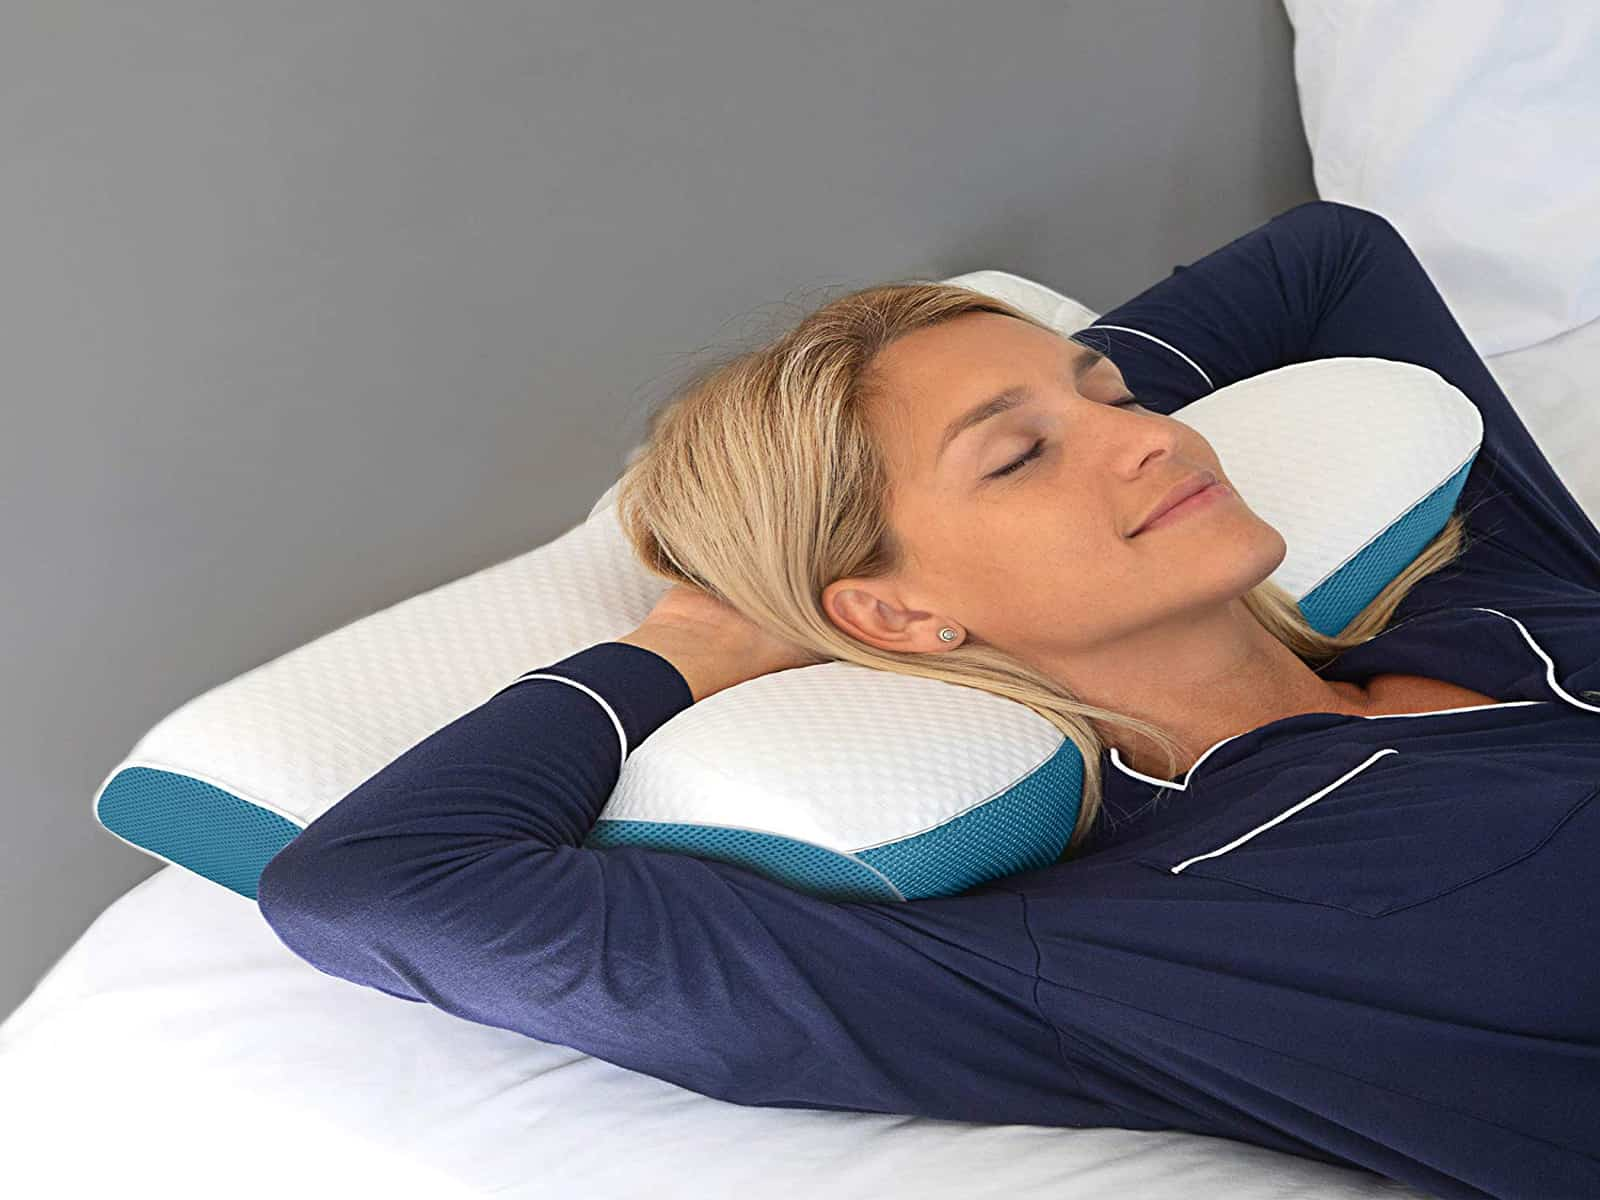 7 Best Pillows for Neck Pain 2021